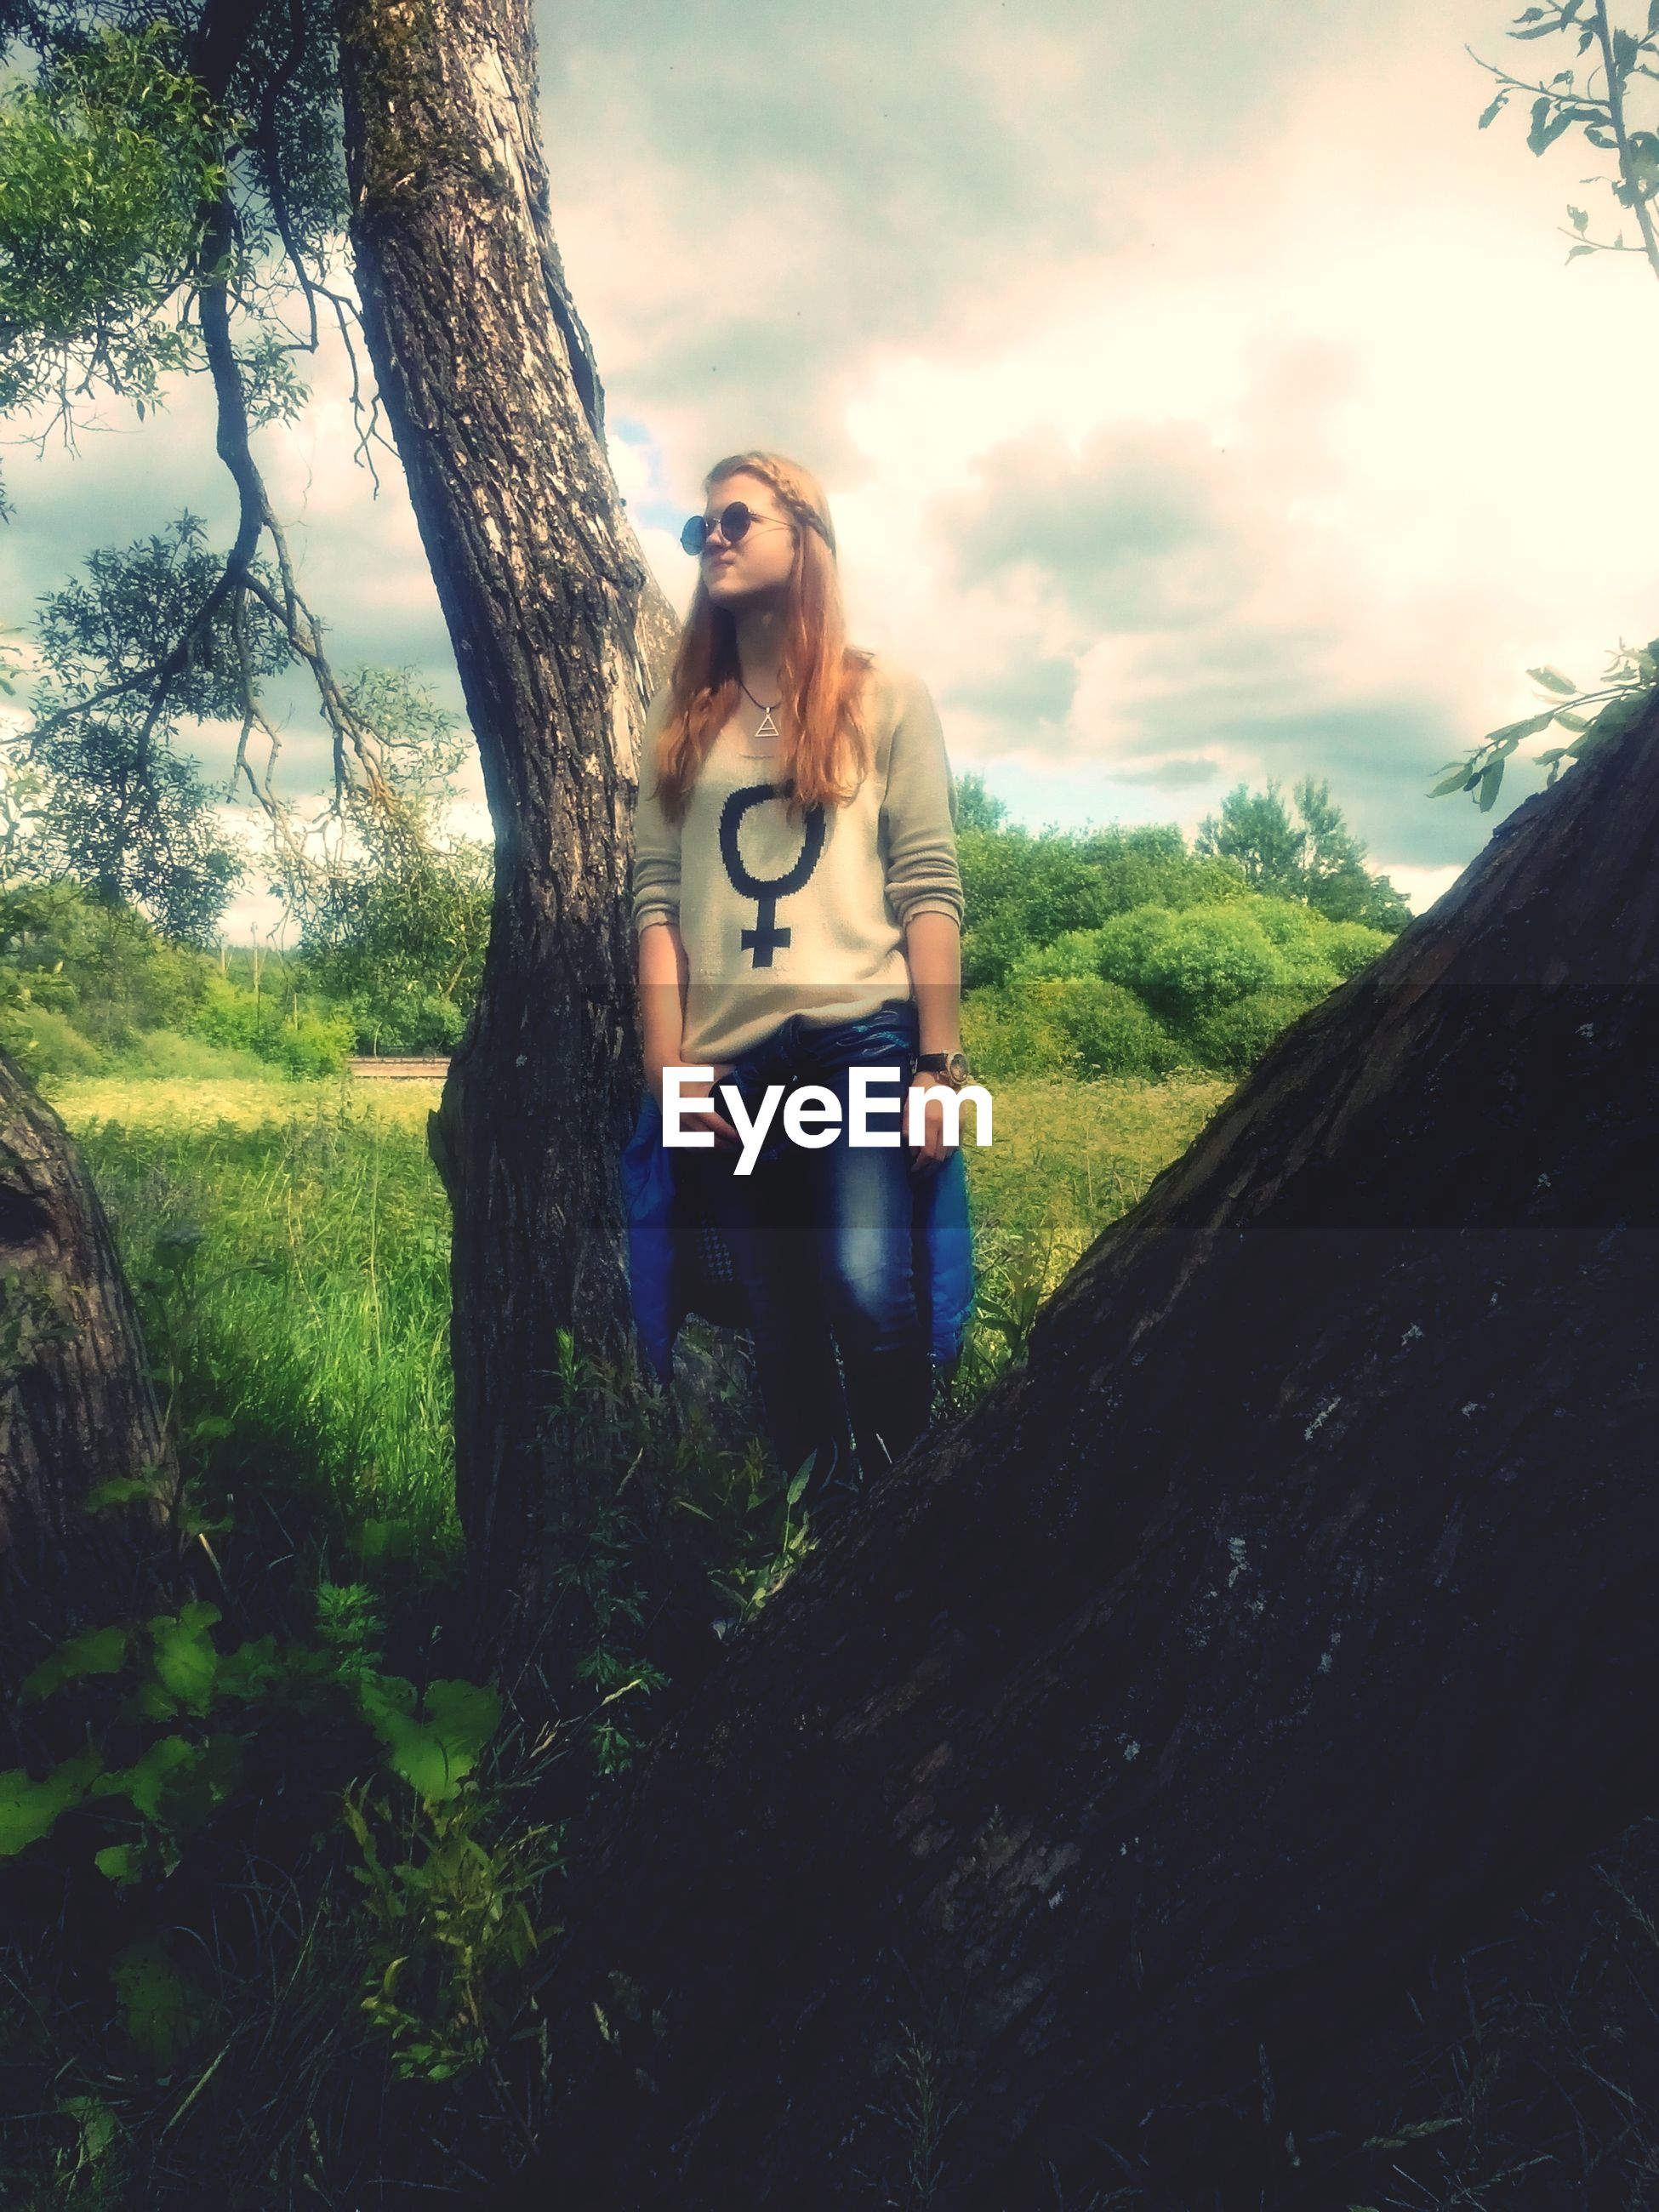 young adult, lifestyles, leisure activity, tree, person, young women, casual clothing, full length, sky, looking at camera, sunglasses, front view, portrait, standing, three quarter length, nature, camera - photographic equipment